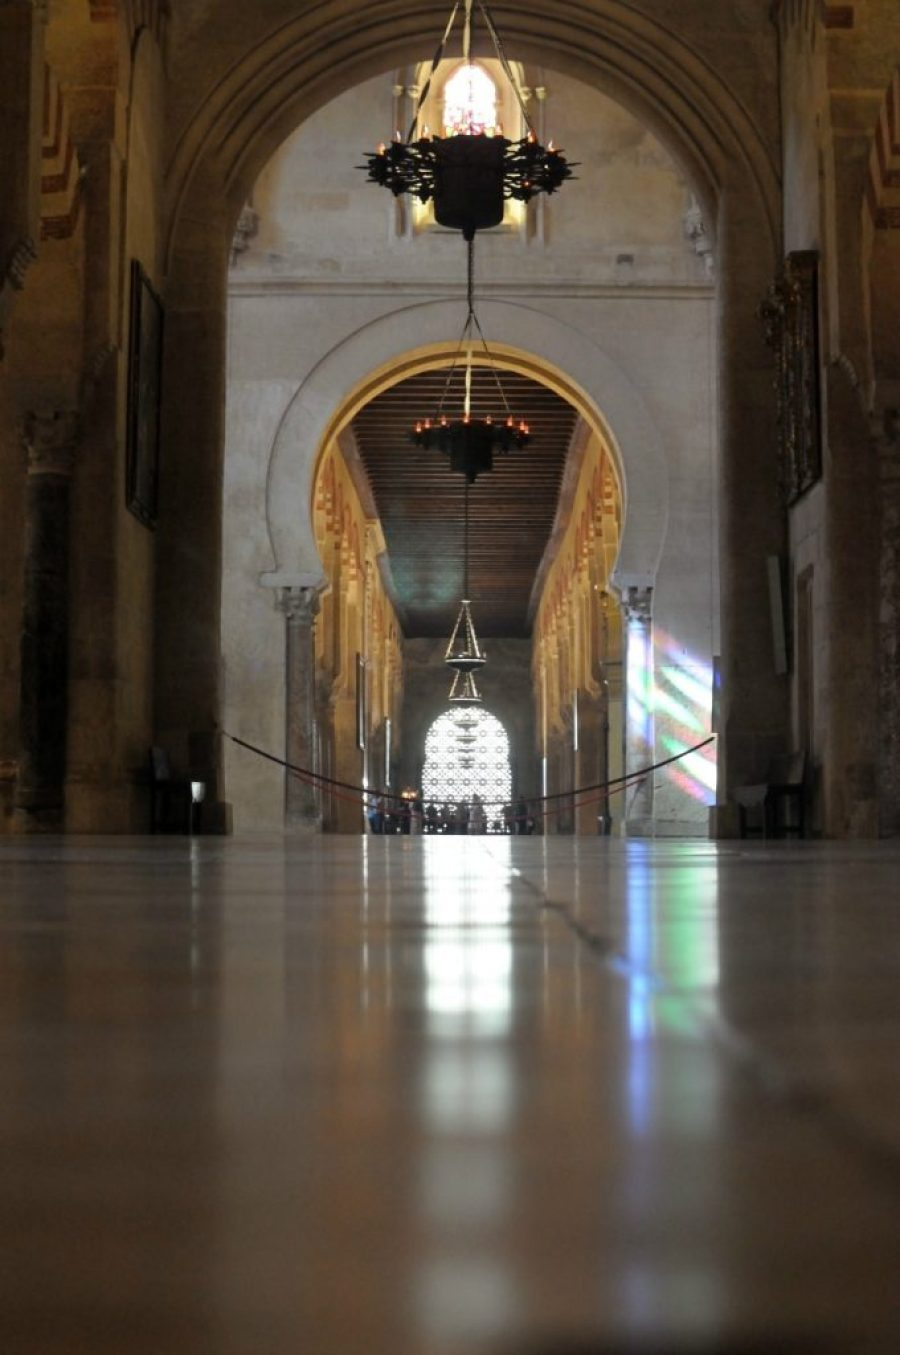 The stunning interior of the Mosque of Cordoba, Spain